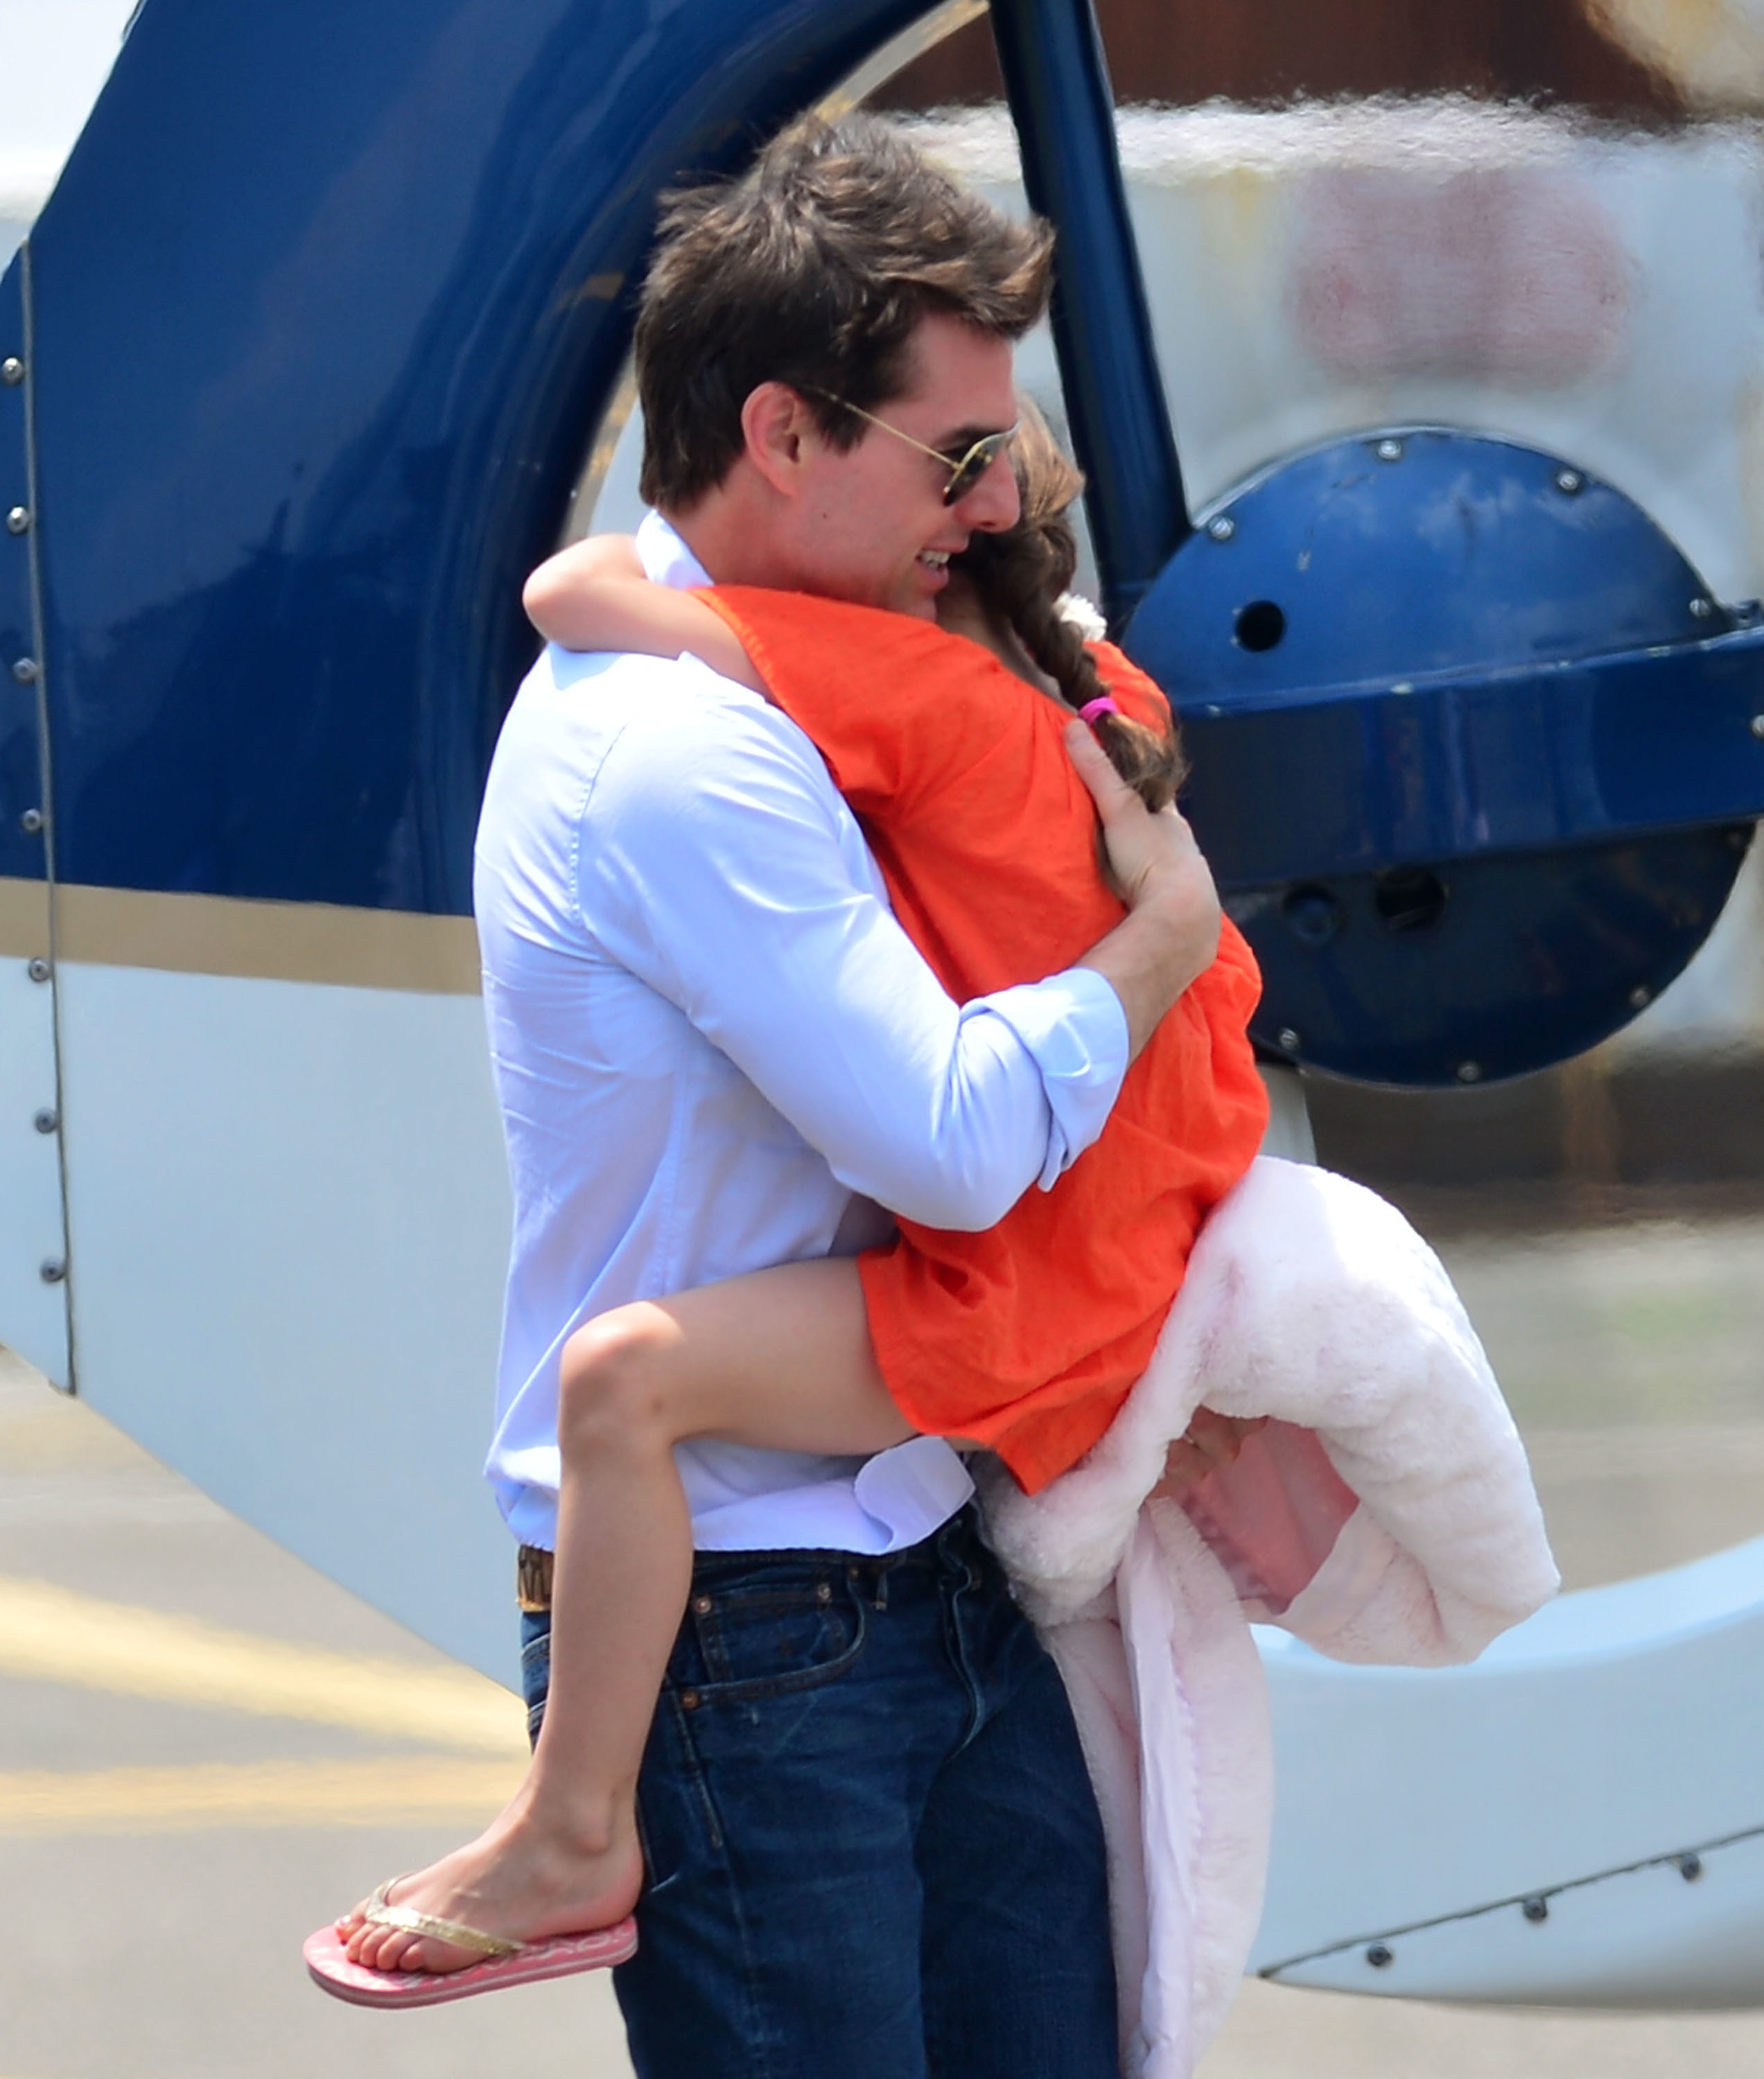 tom cruise one year after the split